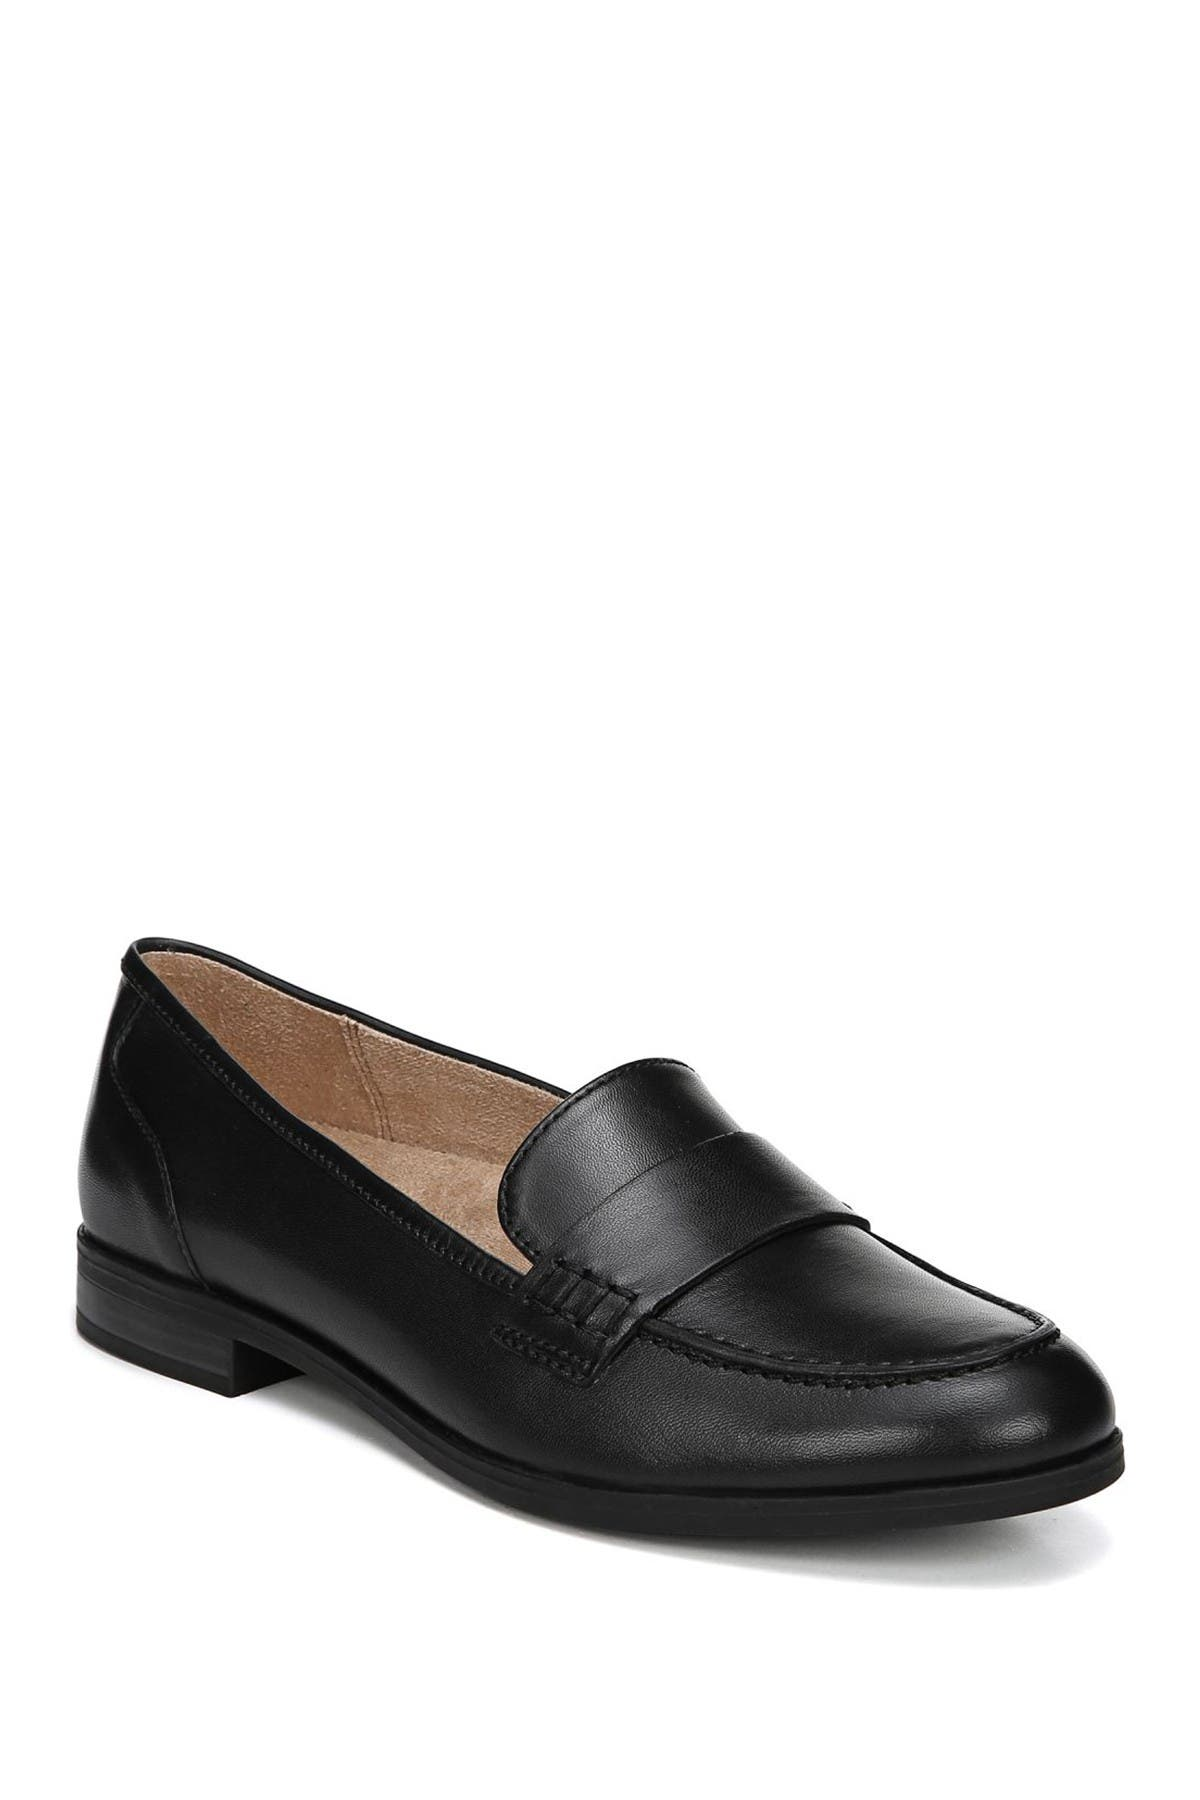 Image of Naturalizer Milo Loafer - Wide Width Available